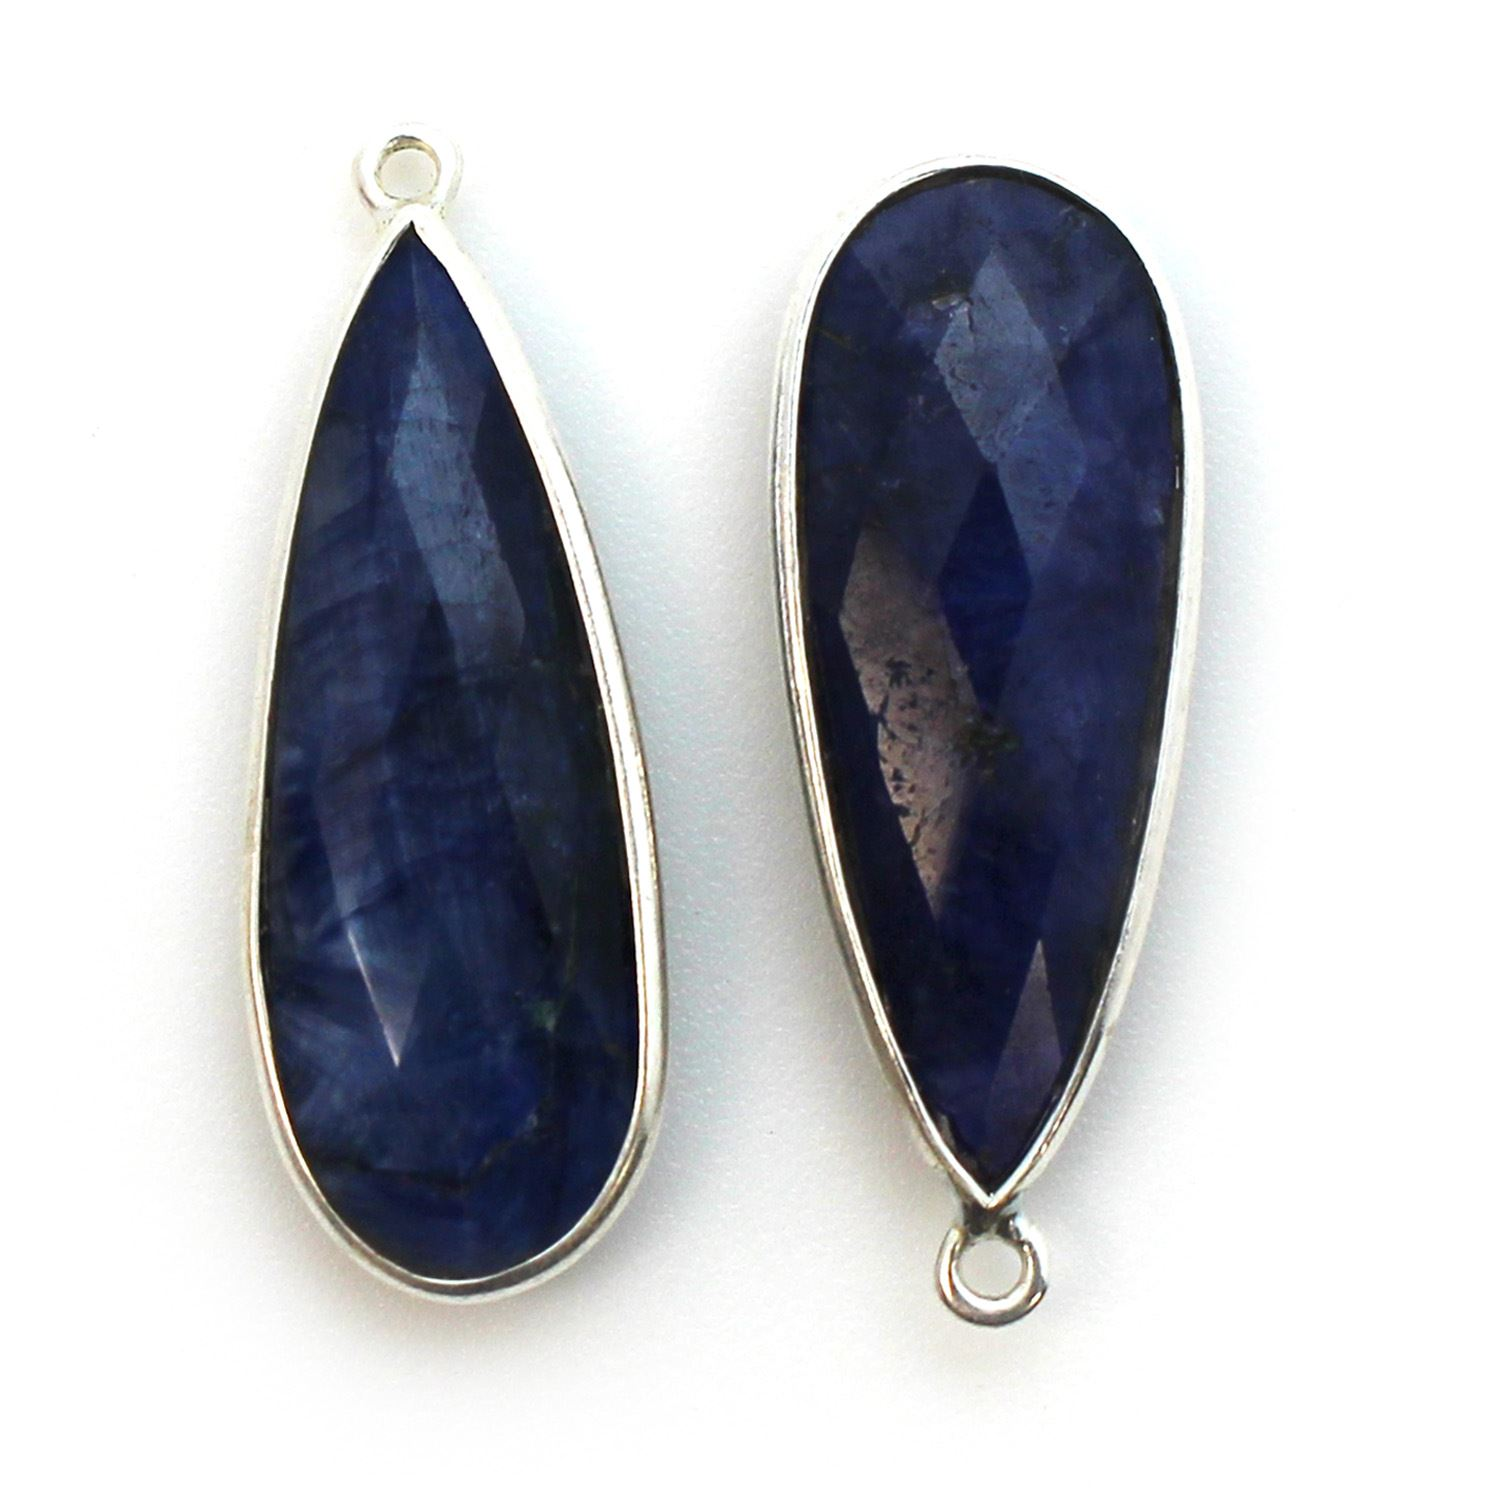 Bezel Charm Pendant - 925 Sterling Silver Charm - Elongated Teardrop Shape- Blue Sapphire Dyed - September BIrthstone - 34mm by 11mm  (sold per 2 pieces)